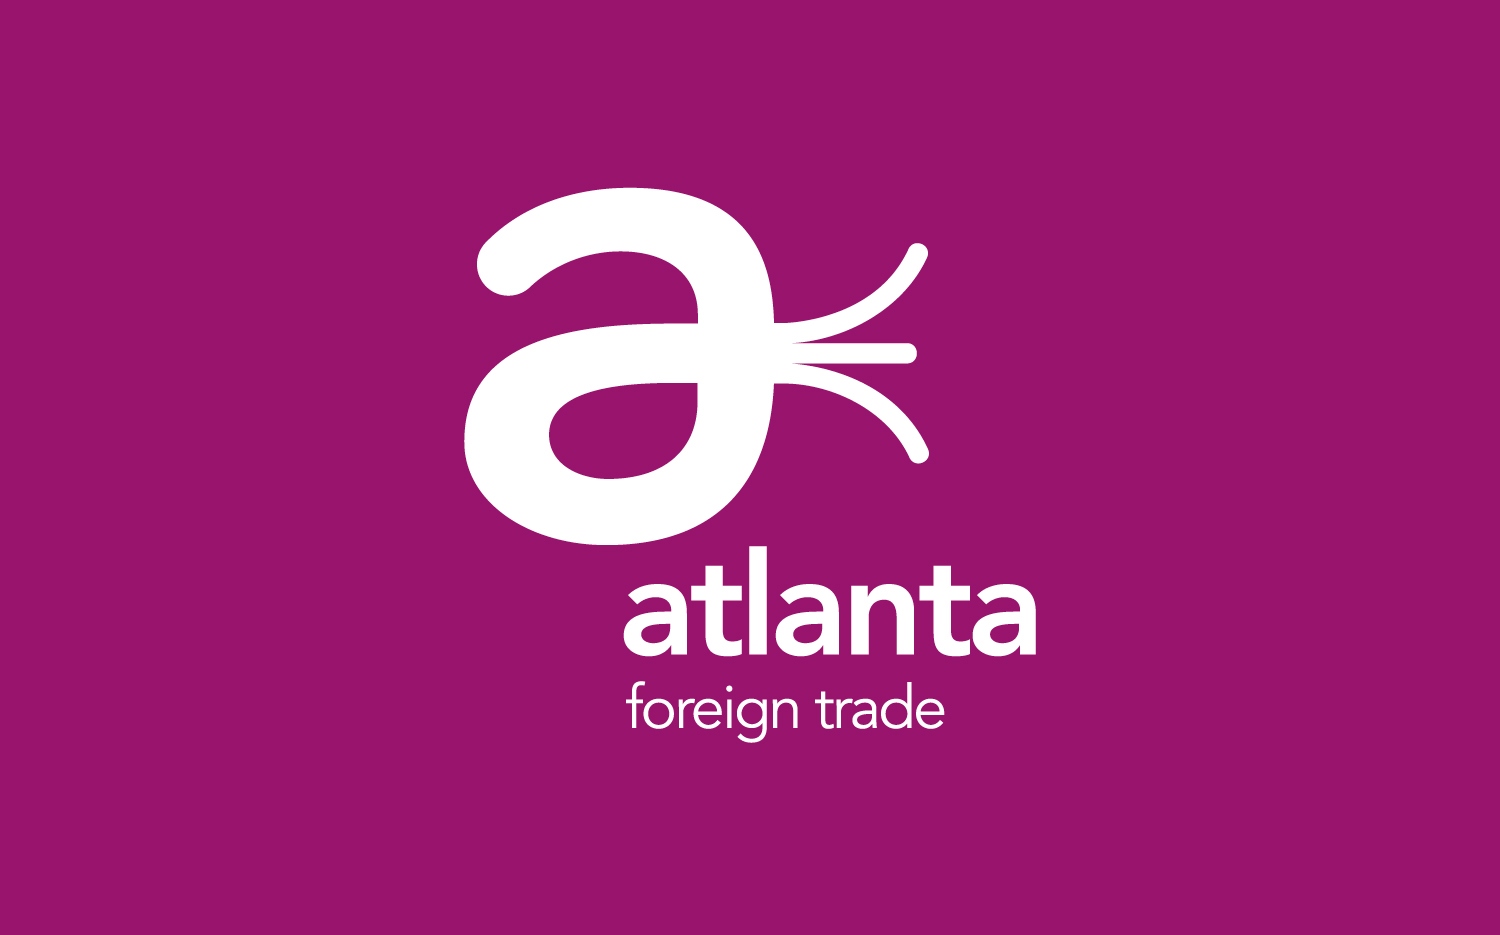 Identidad corporativa de Atlanta Foreign Trade